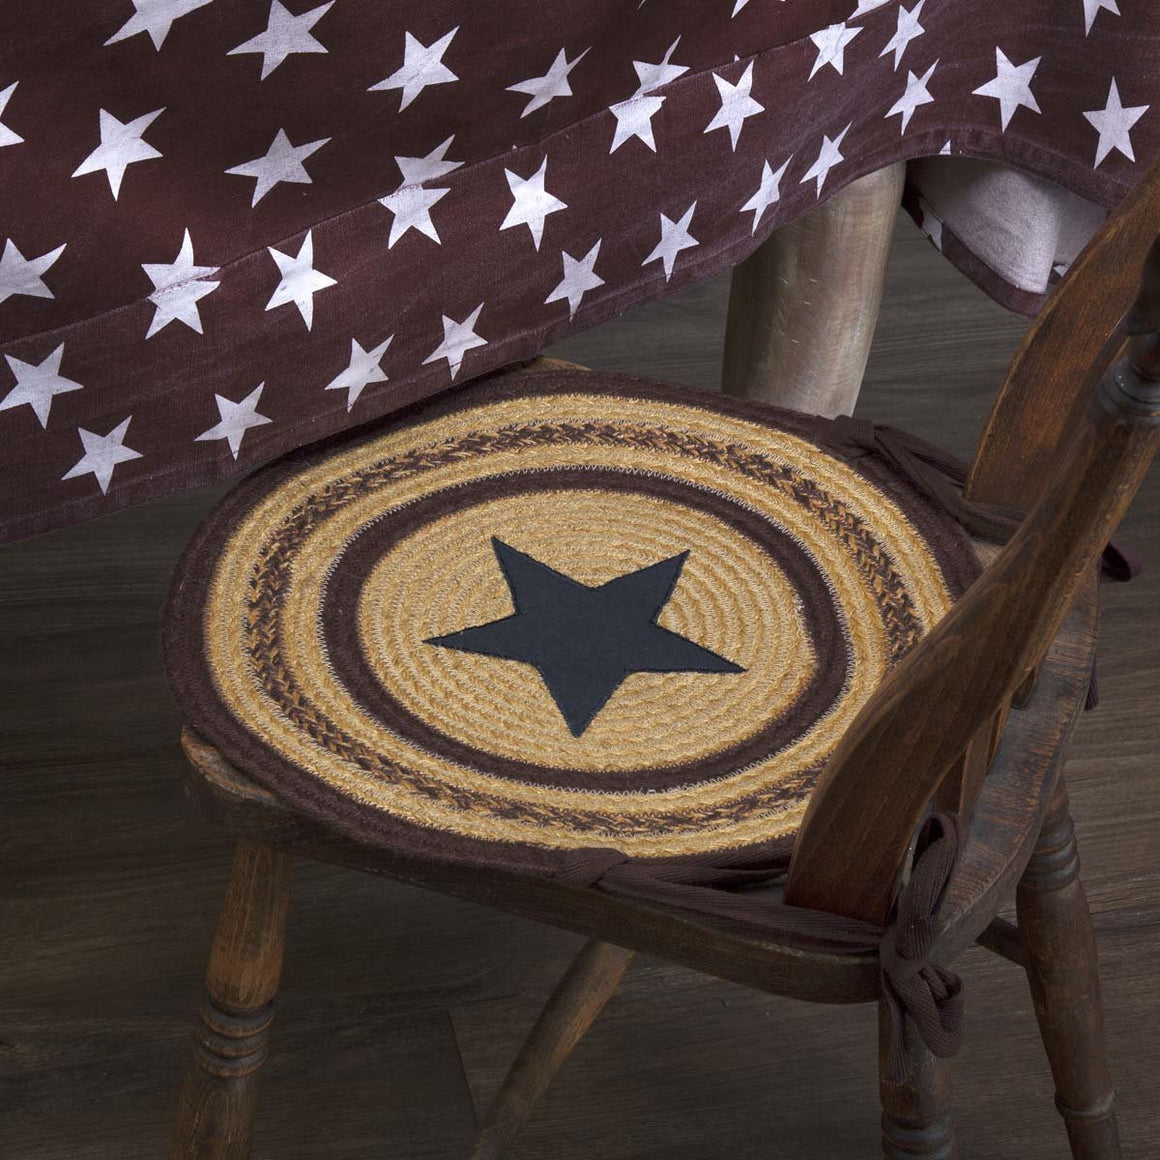 Potomac Jute Applique Star Chair Pad Set of 6